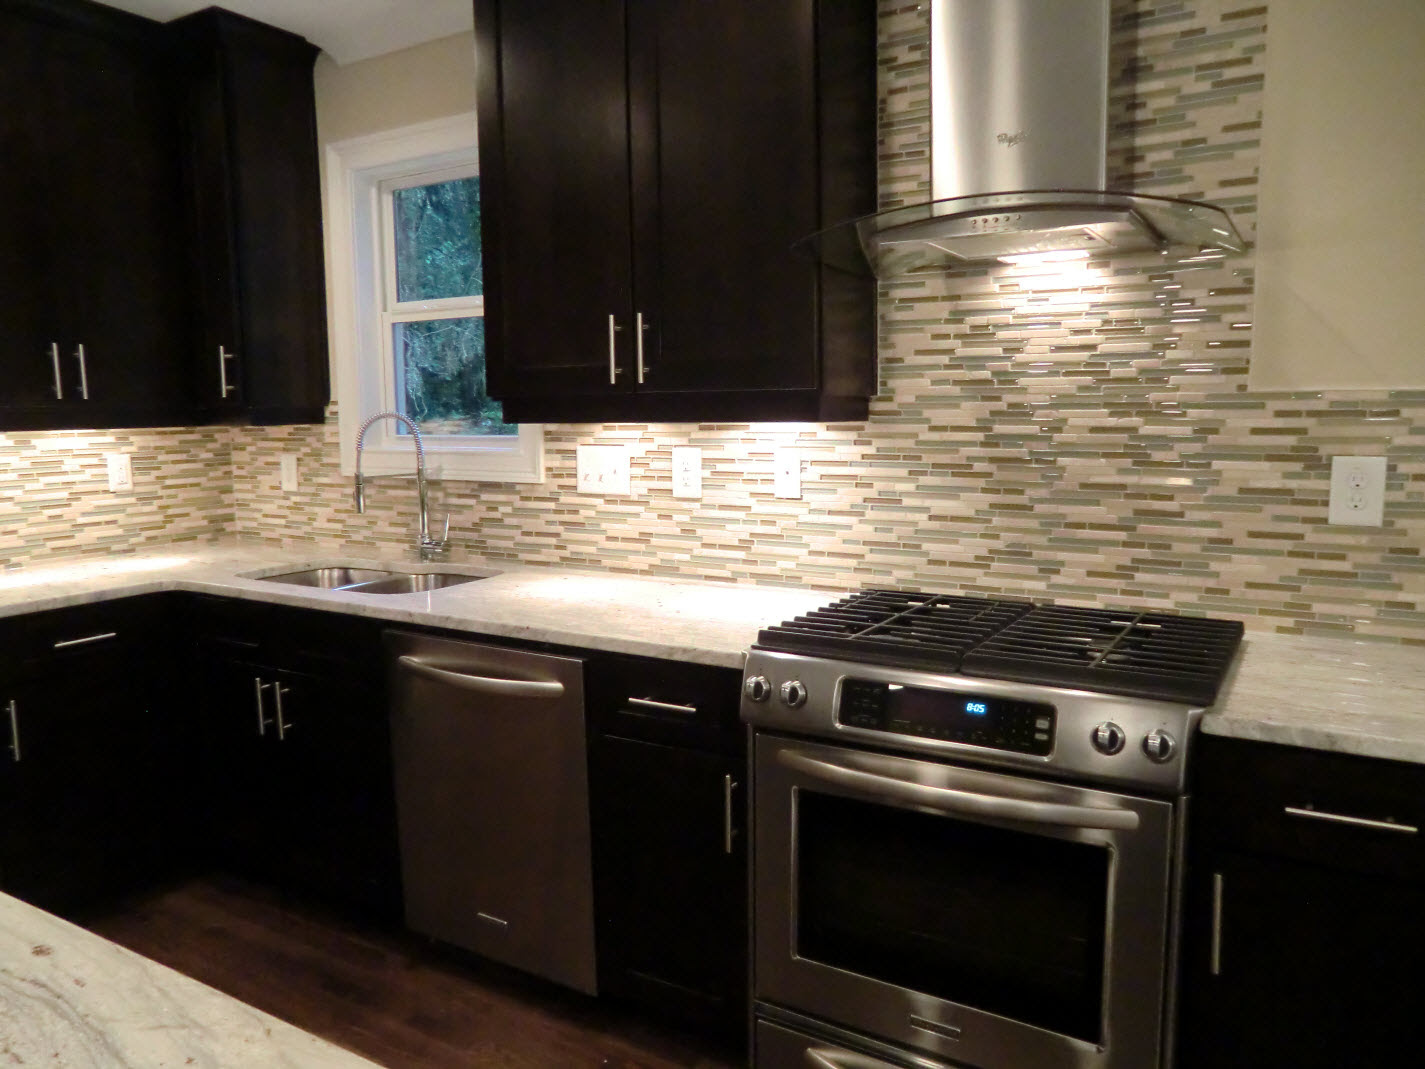 HighEnd Kitchens with Appliances